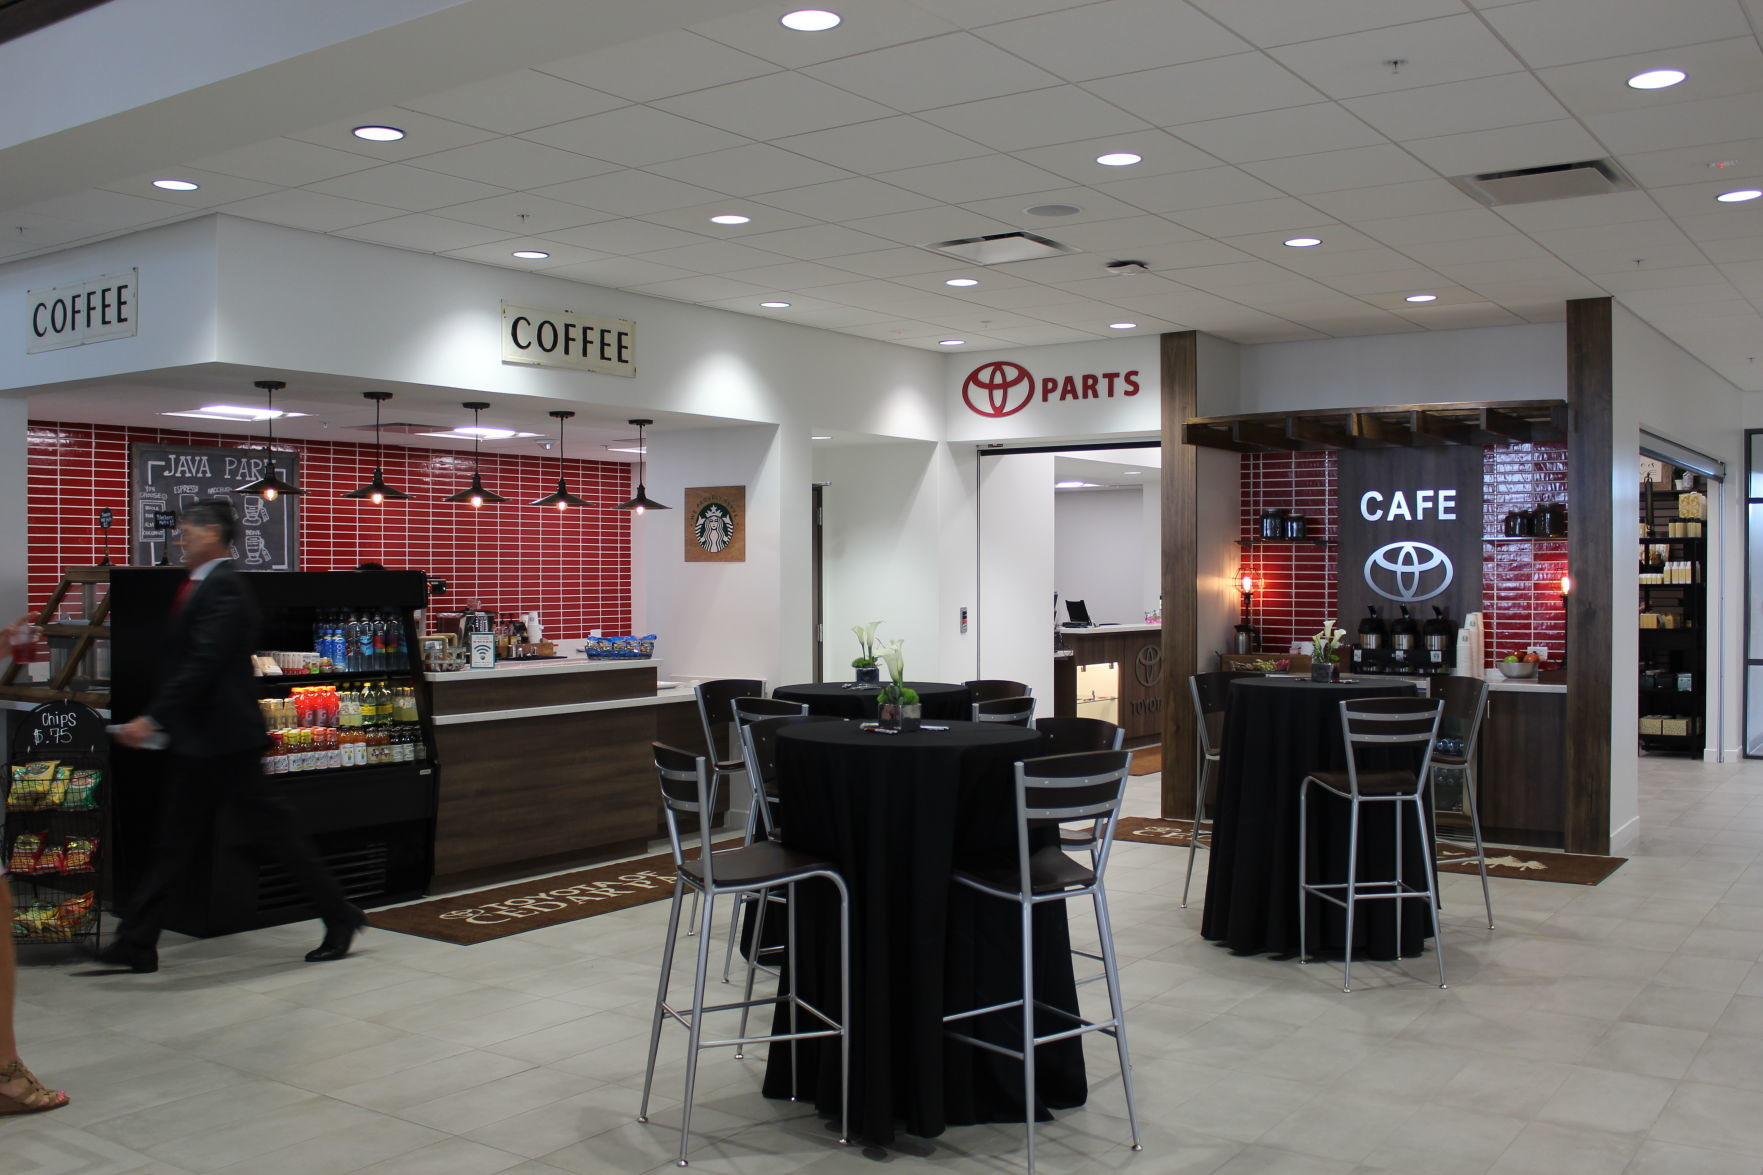 The 80 000 Square Foot Toyota Facility Features A Starbucks Cafe For Customers Waiting On Service